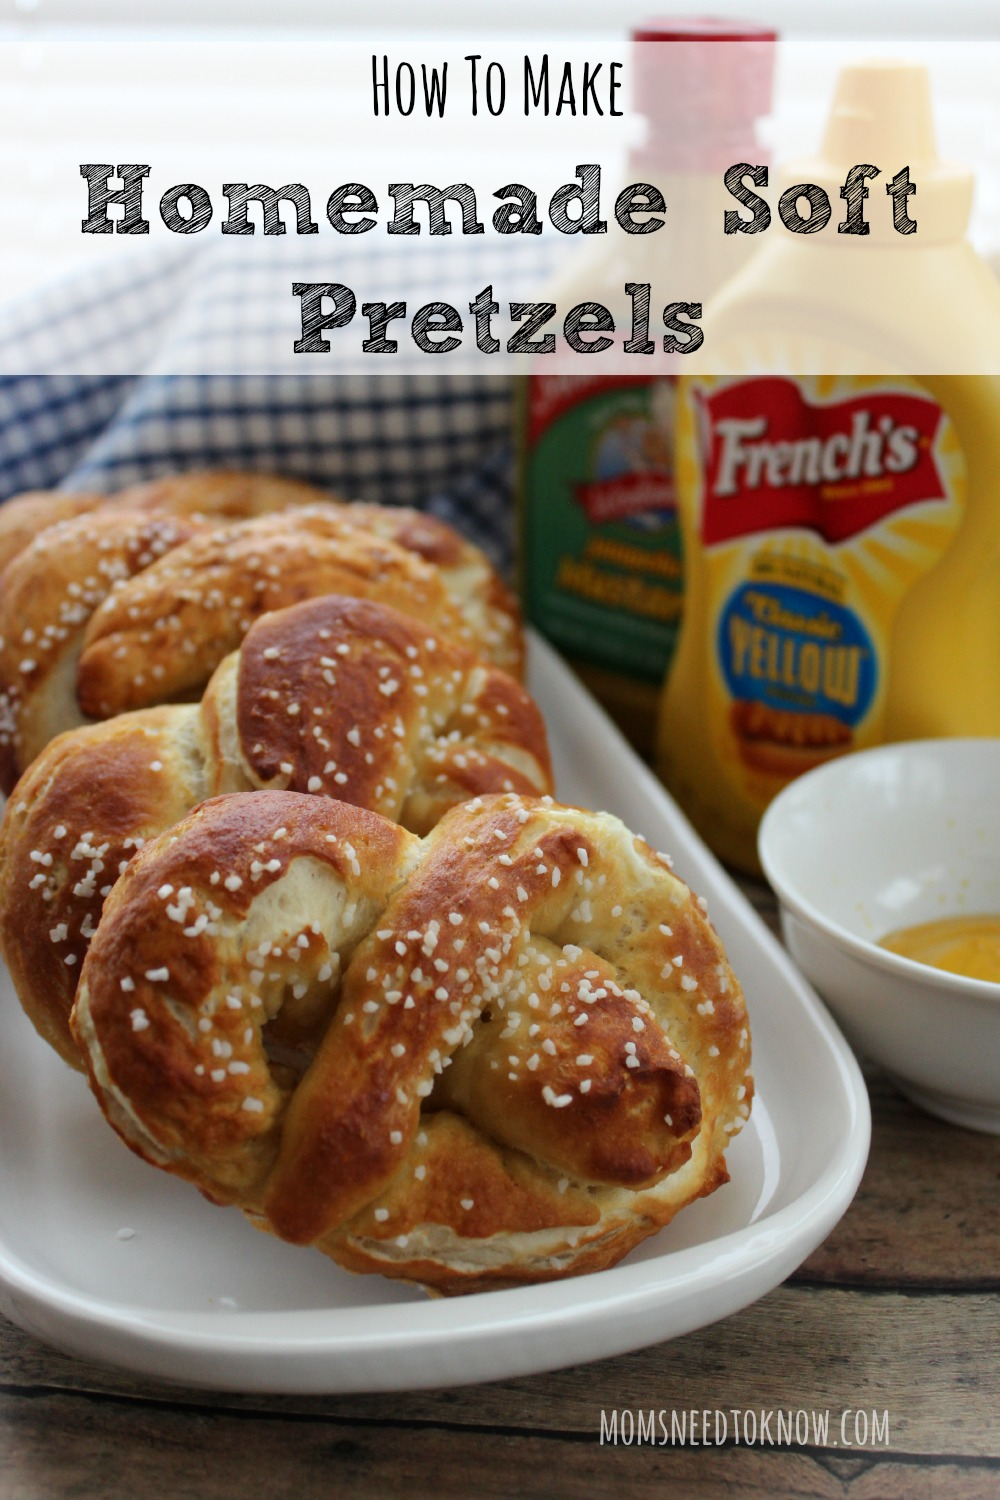 With my delicious soft pretzels recipe, you can enjoy fresh homemade pretzels straight from the oven! These are really fun to make with my children!